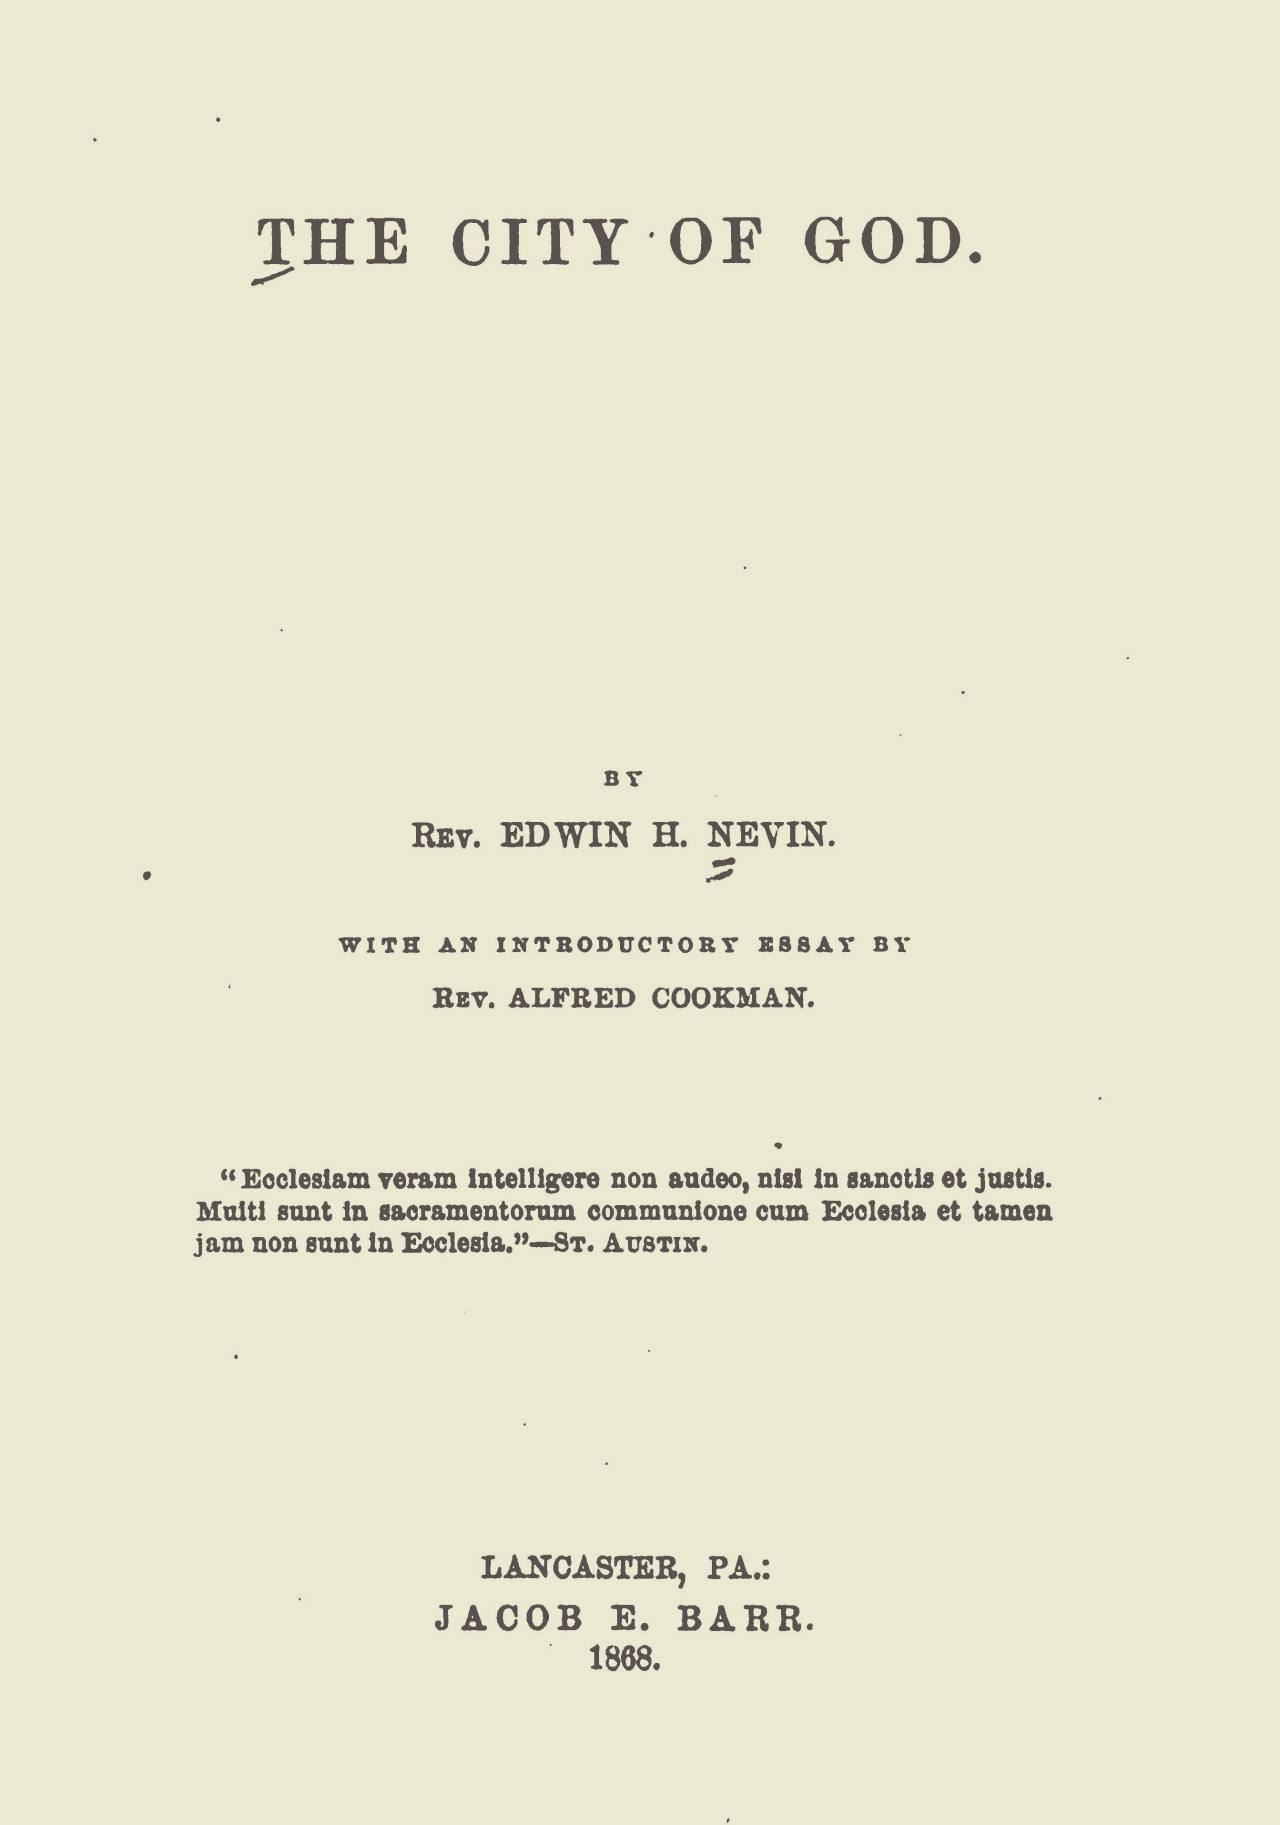 Nevin, Edwin Henry, The City of God Title Page.jpg